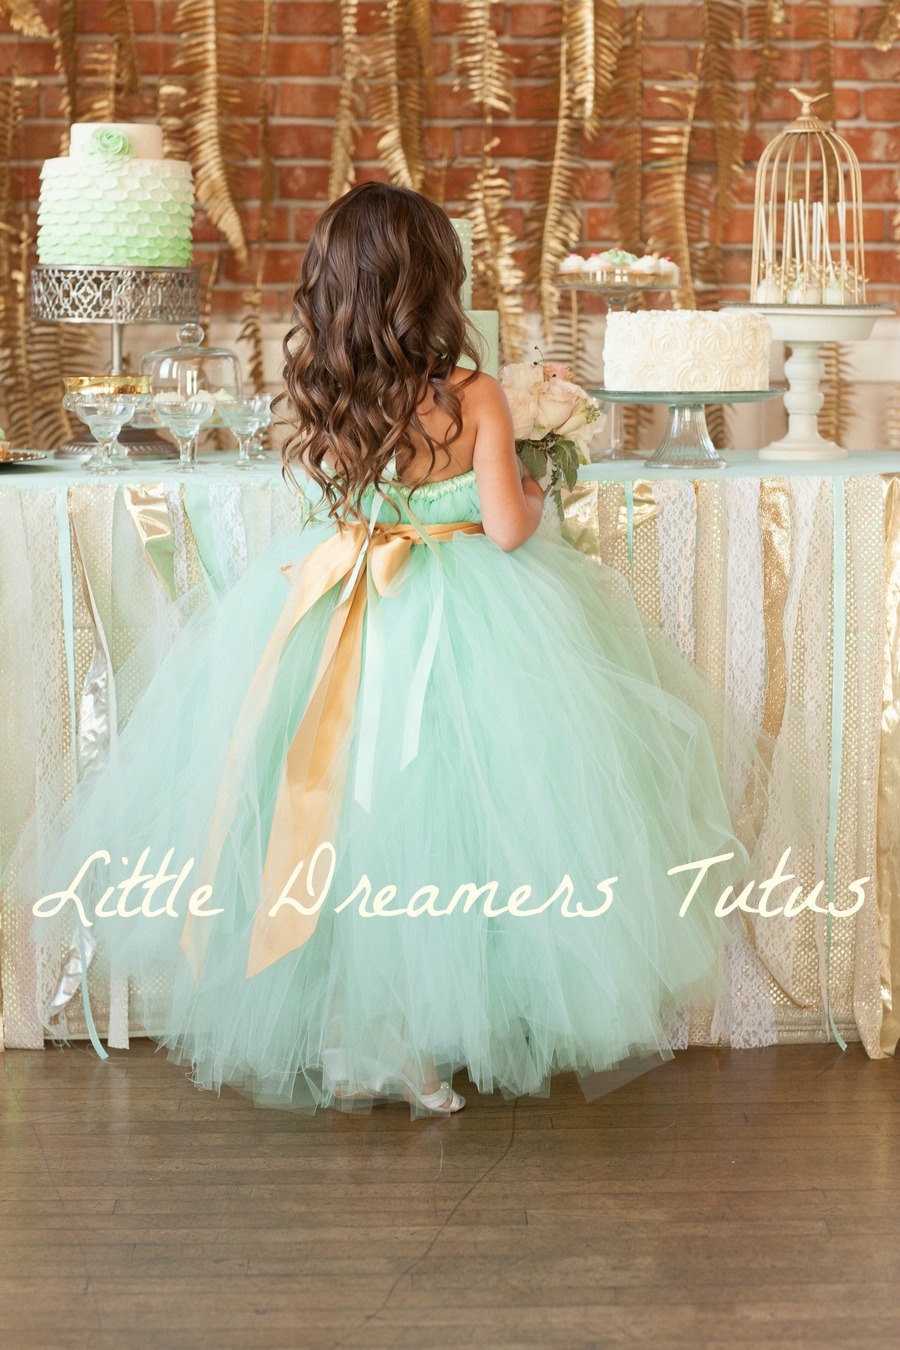 Wedding Mint Flower Girl Dresses flower girl dress mint green gold adorable gold